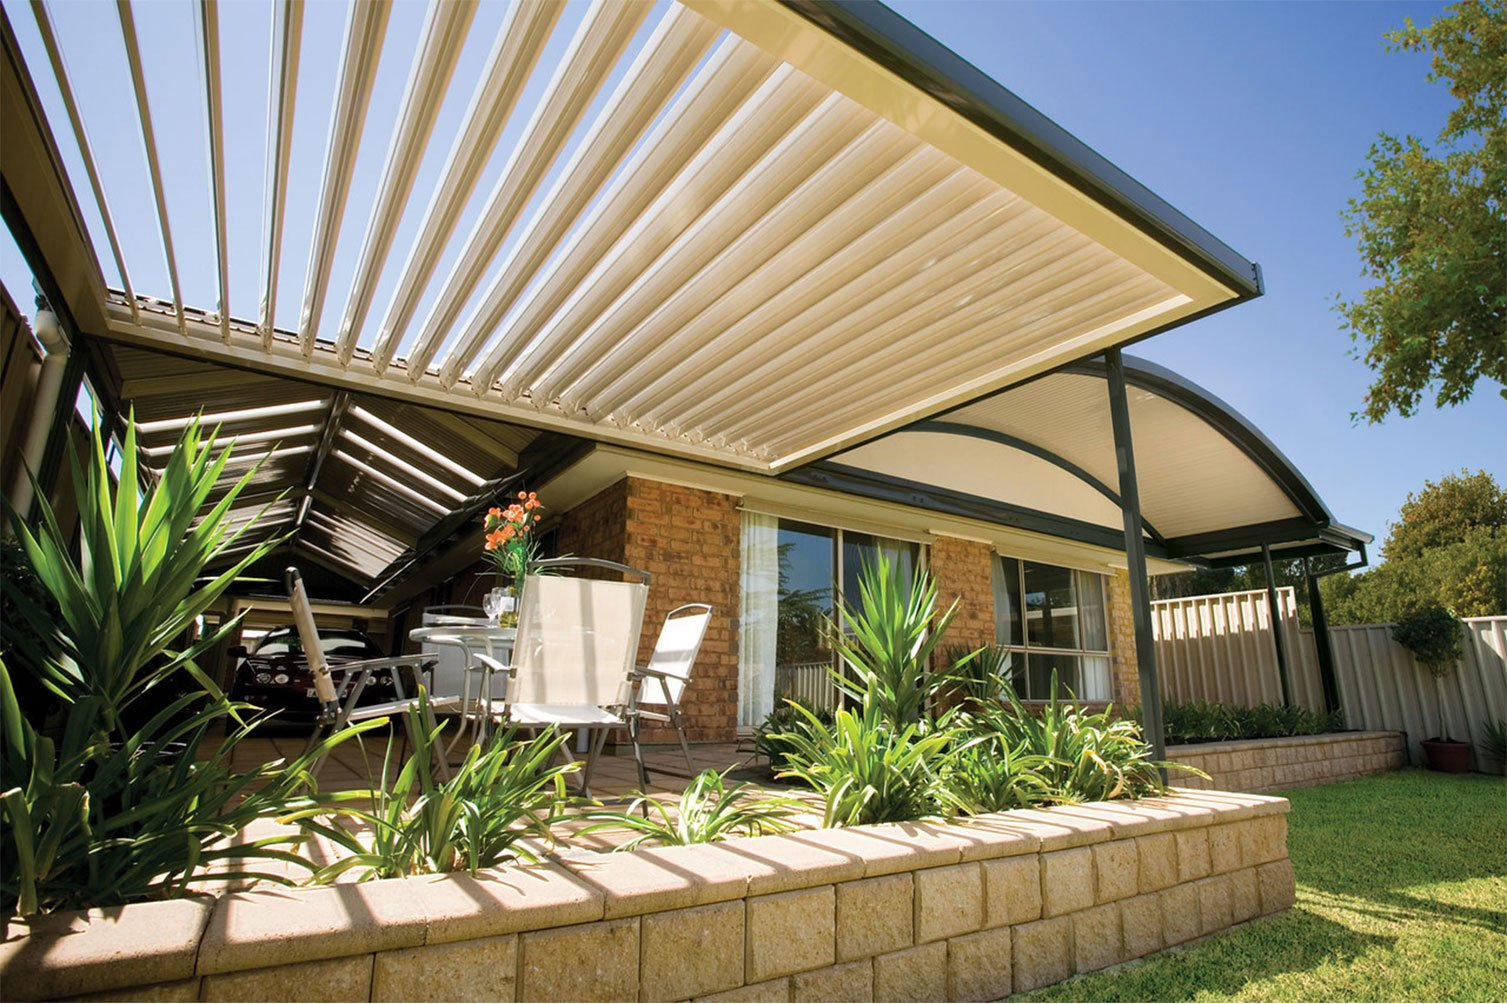 Patio builders says take pleasure as you enjoy outdoor living under the opening sunroofs in Kingscliff